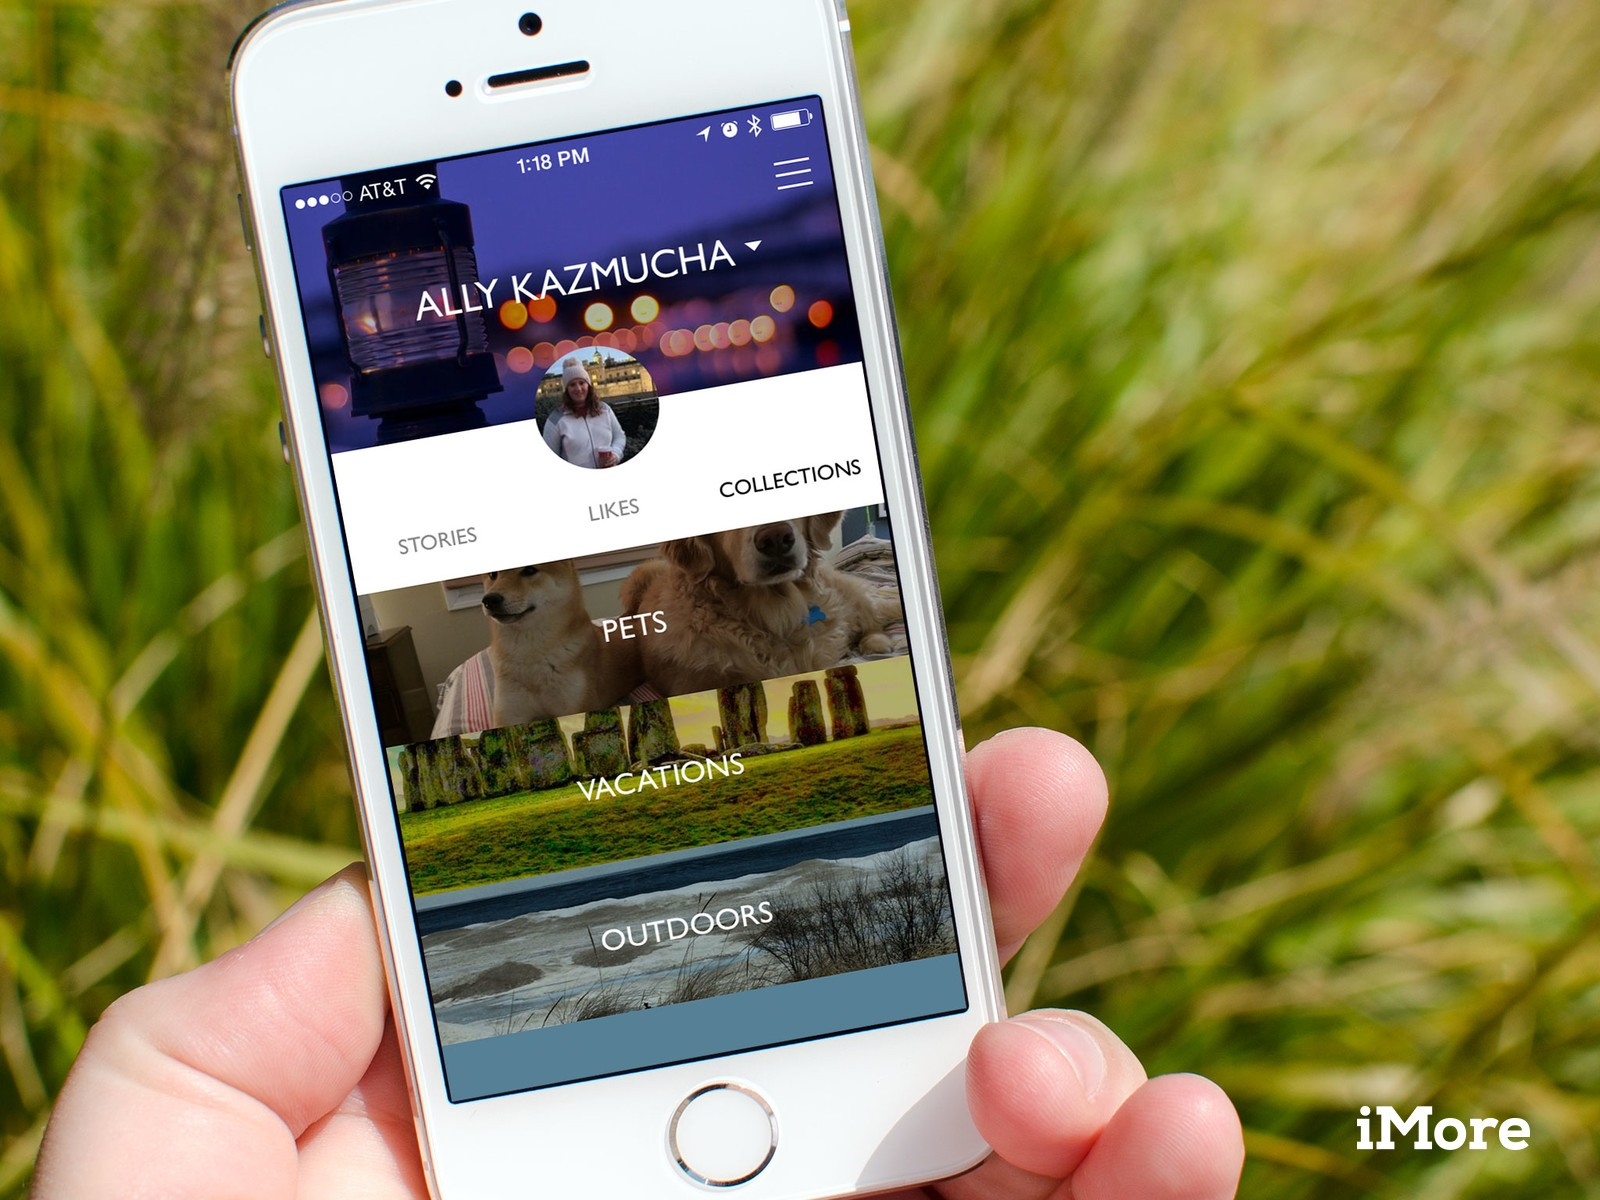 Steller for iPhone lets you turn your photos and videos into shareable stories